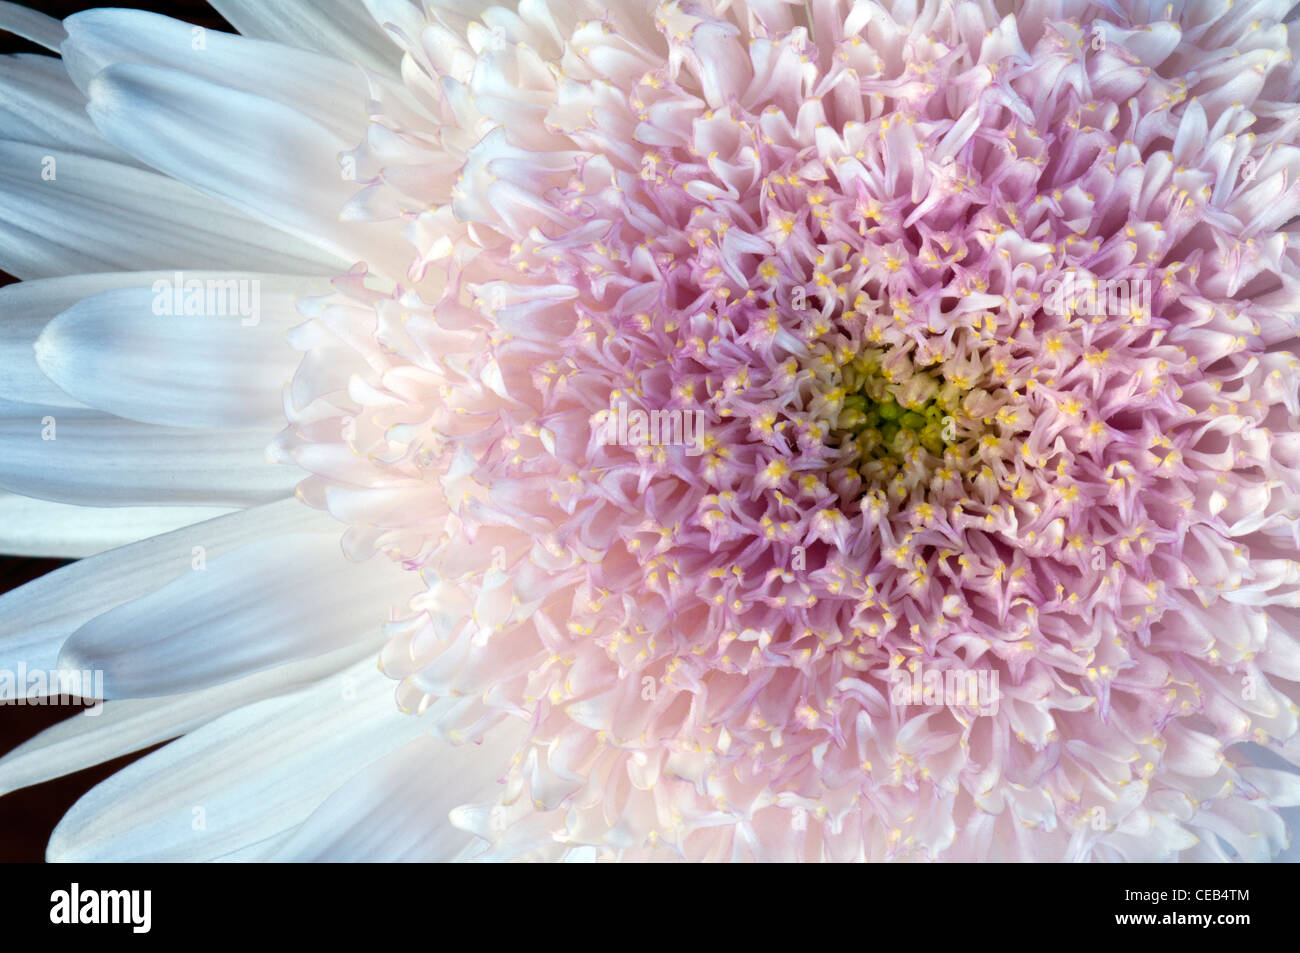 close-up of white flower with pink center - Stock Image